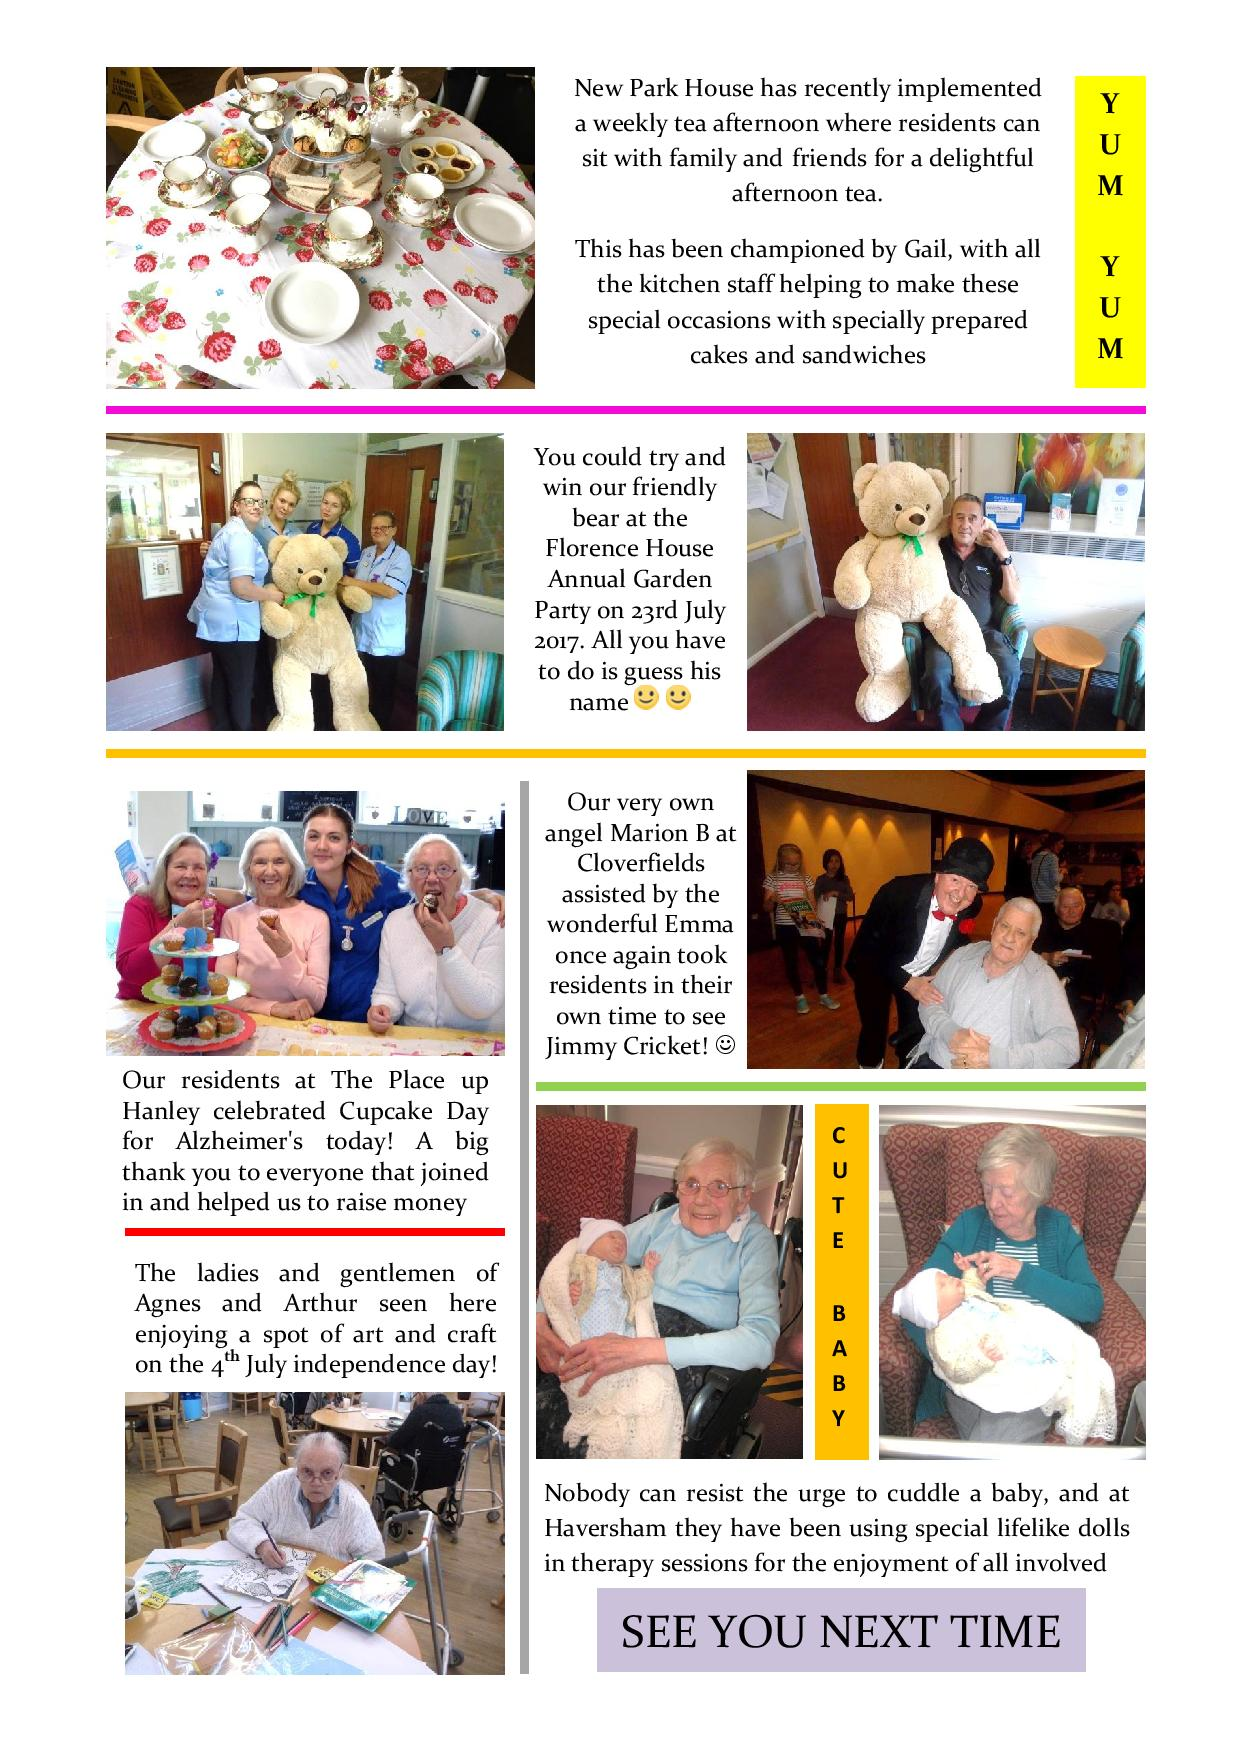 Safe_Harbor_care_homes_in_stoke_on_trent_Newsletter_July_2017_p2.jpg